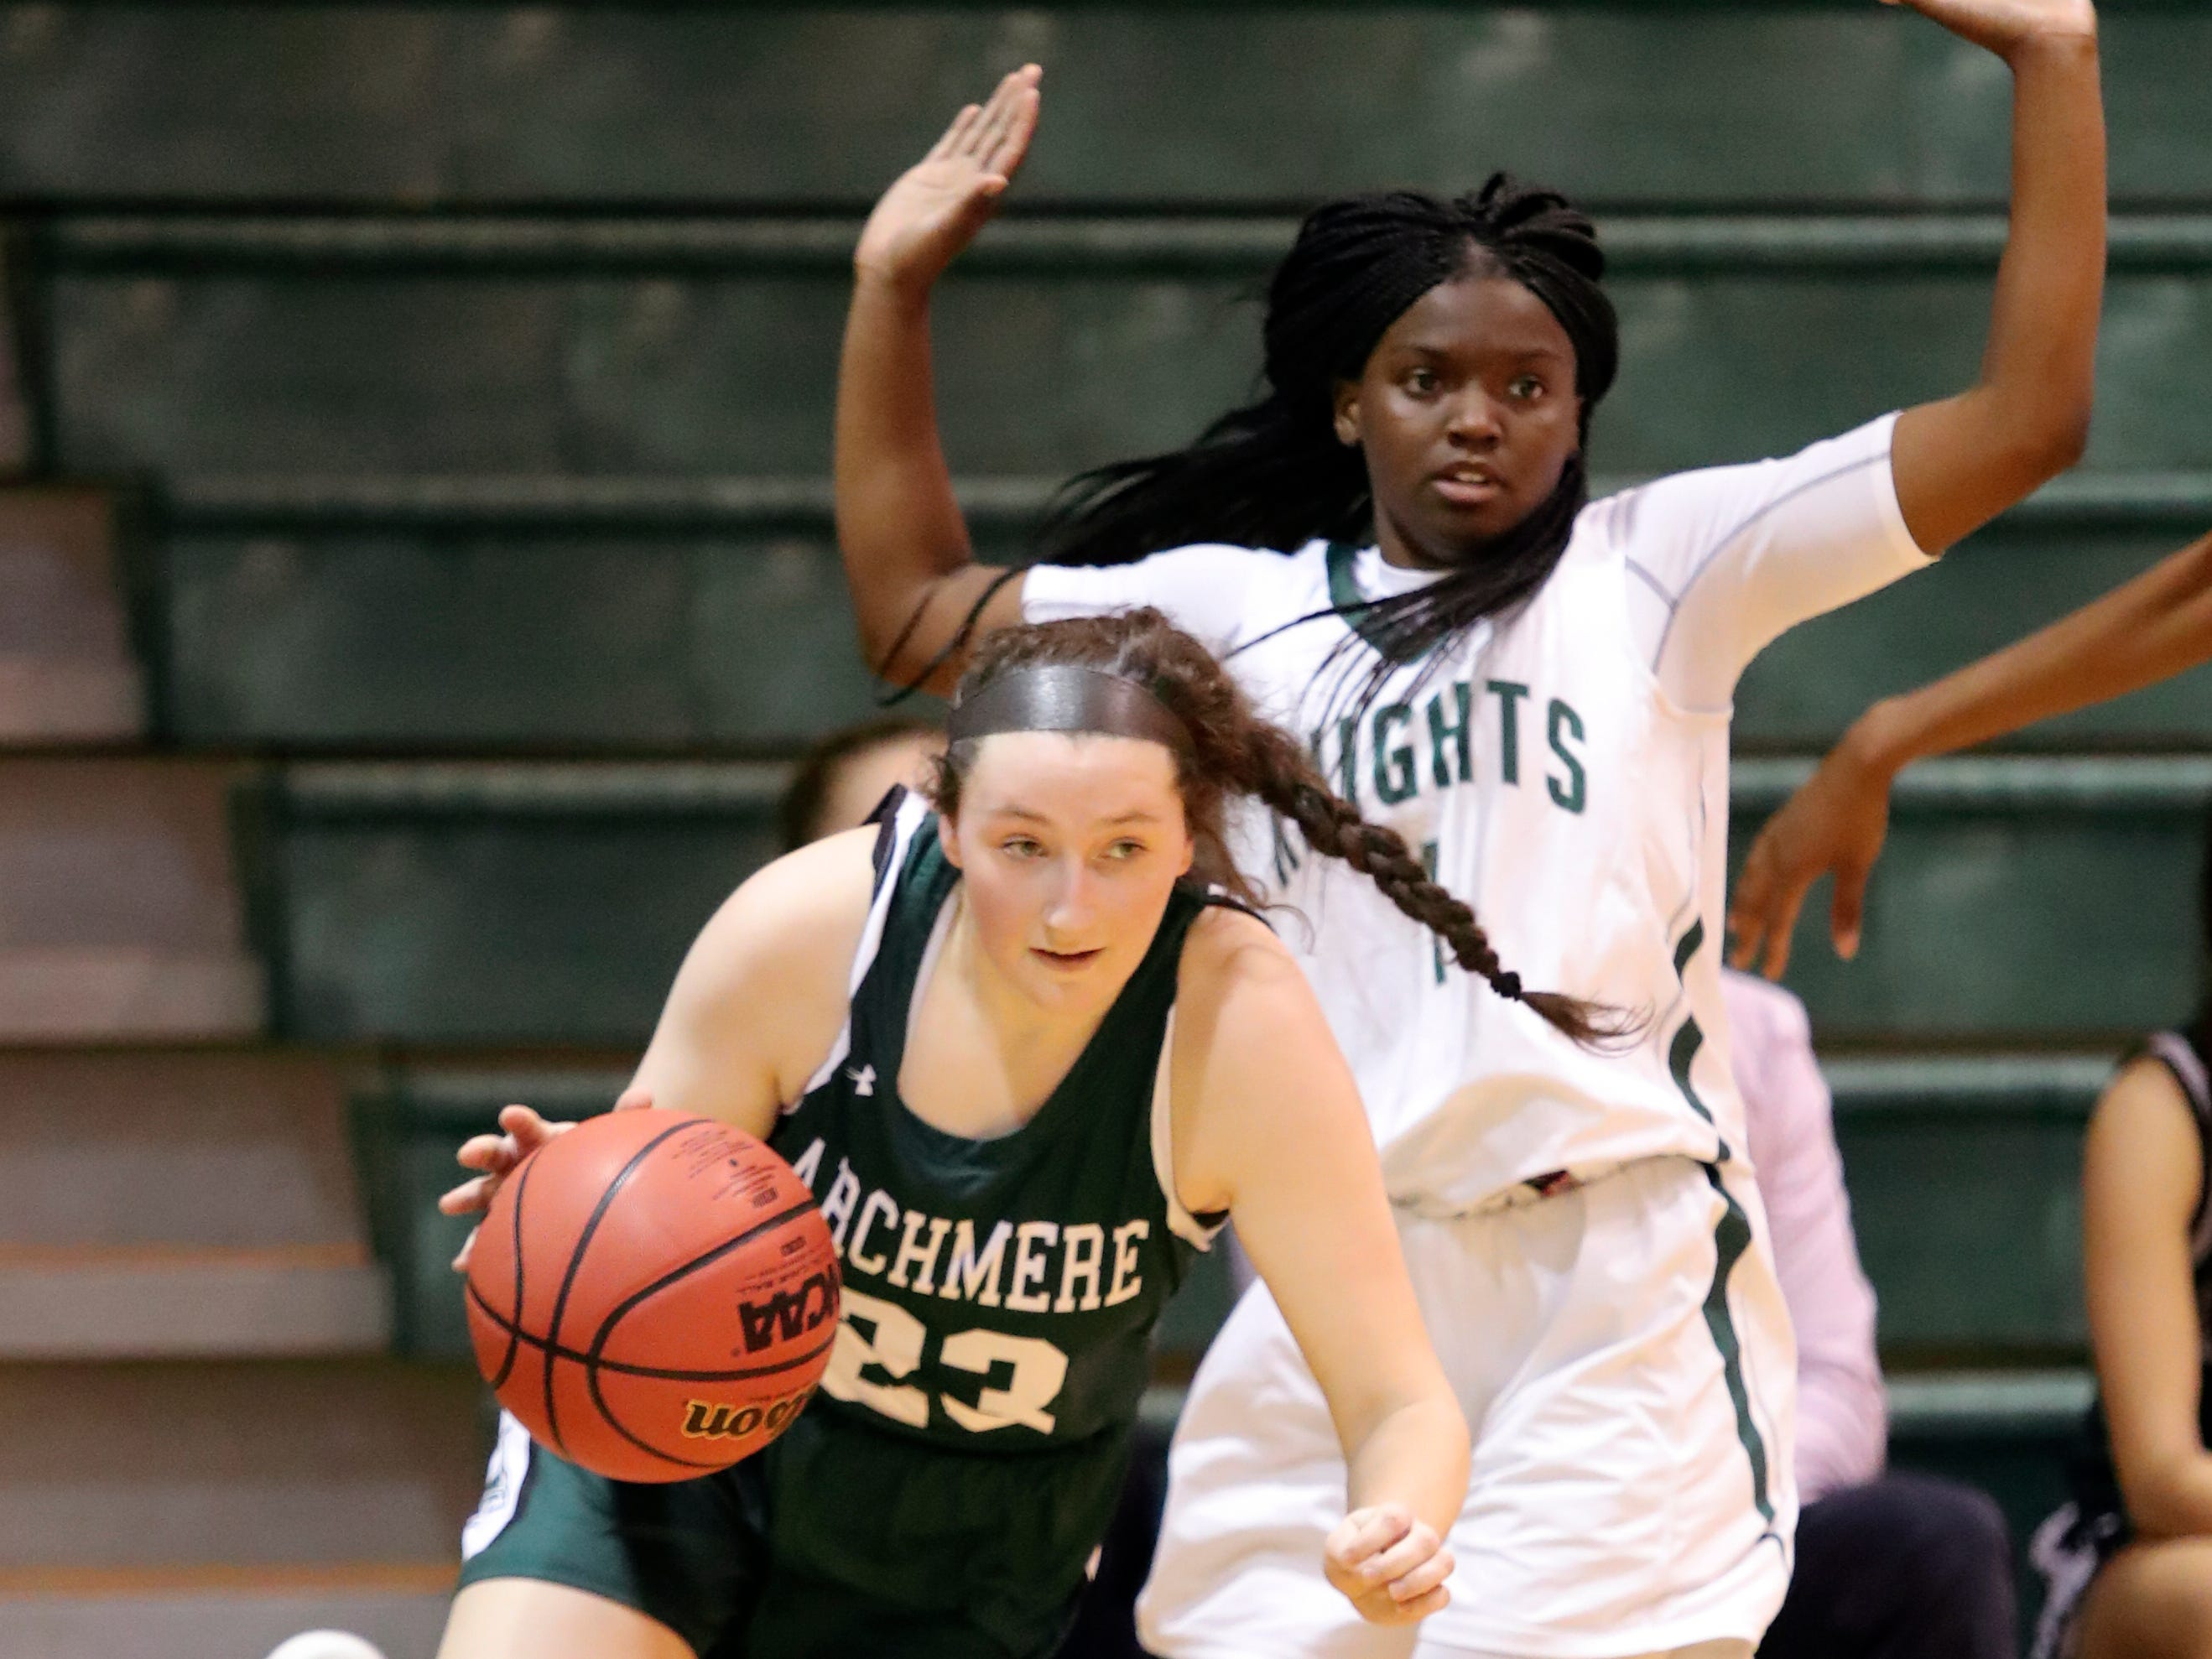 Archmere's Emma McCann (left) pushes past Mount Pleasant's Na'Caia Jackson as the Auks advance, 35-27, in the opening round of the DIAA state tournament Wednesday at Mount Pleasant.